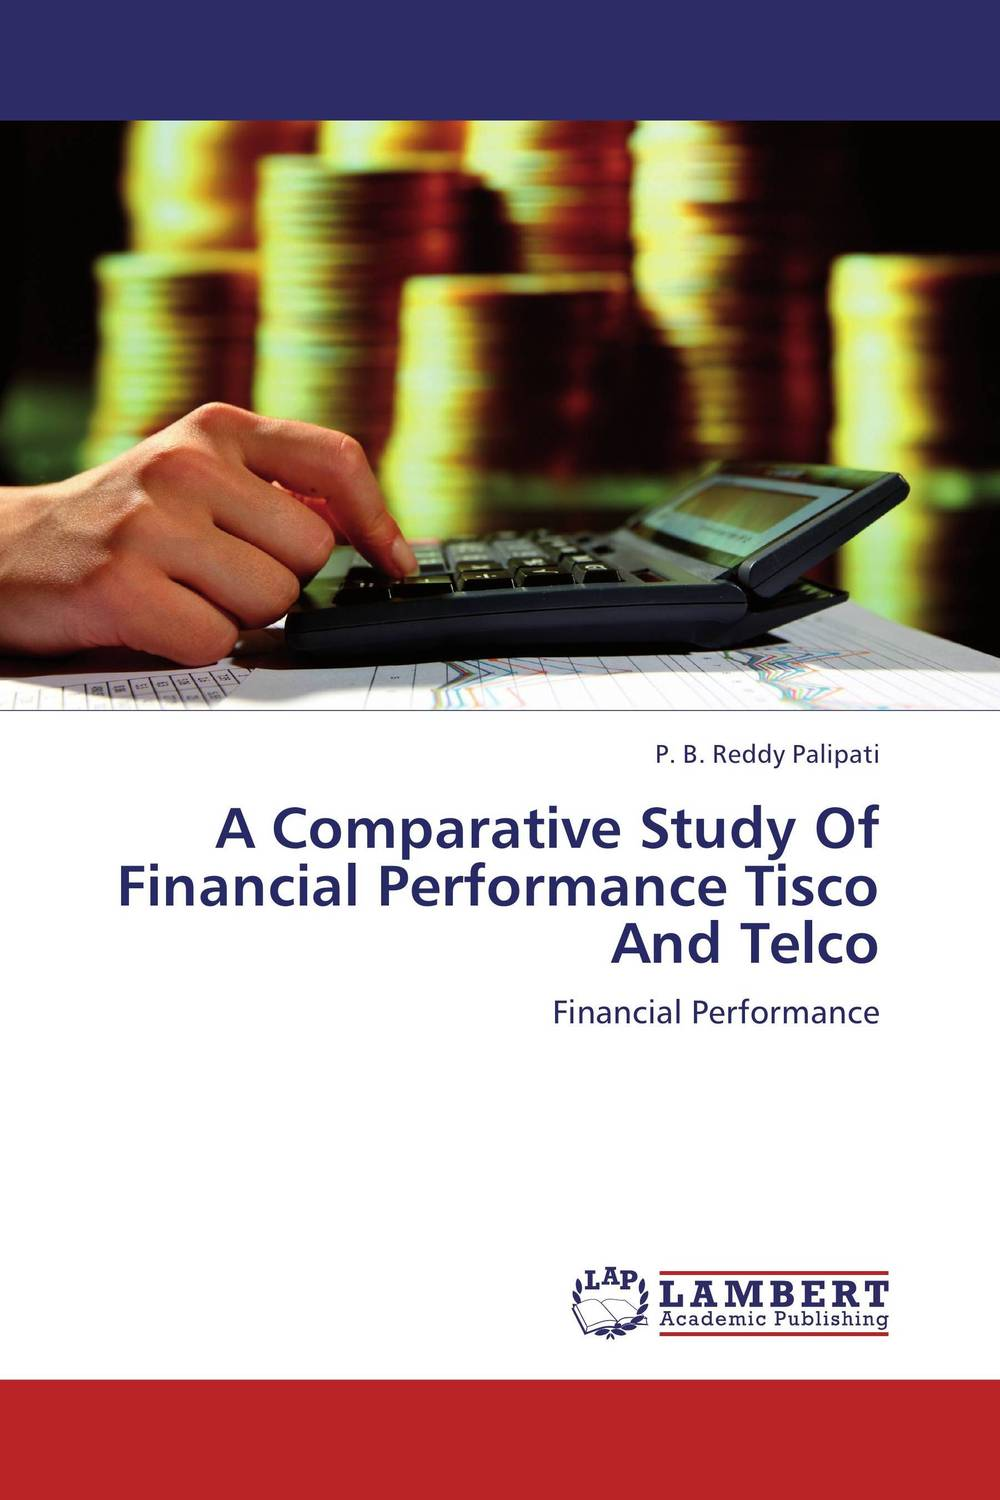 A Comparative Study Of Financial Performance Tisco And Telco majid abbasi board diversity and firm performance a study of iran